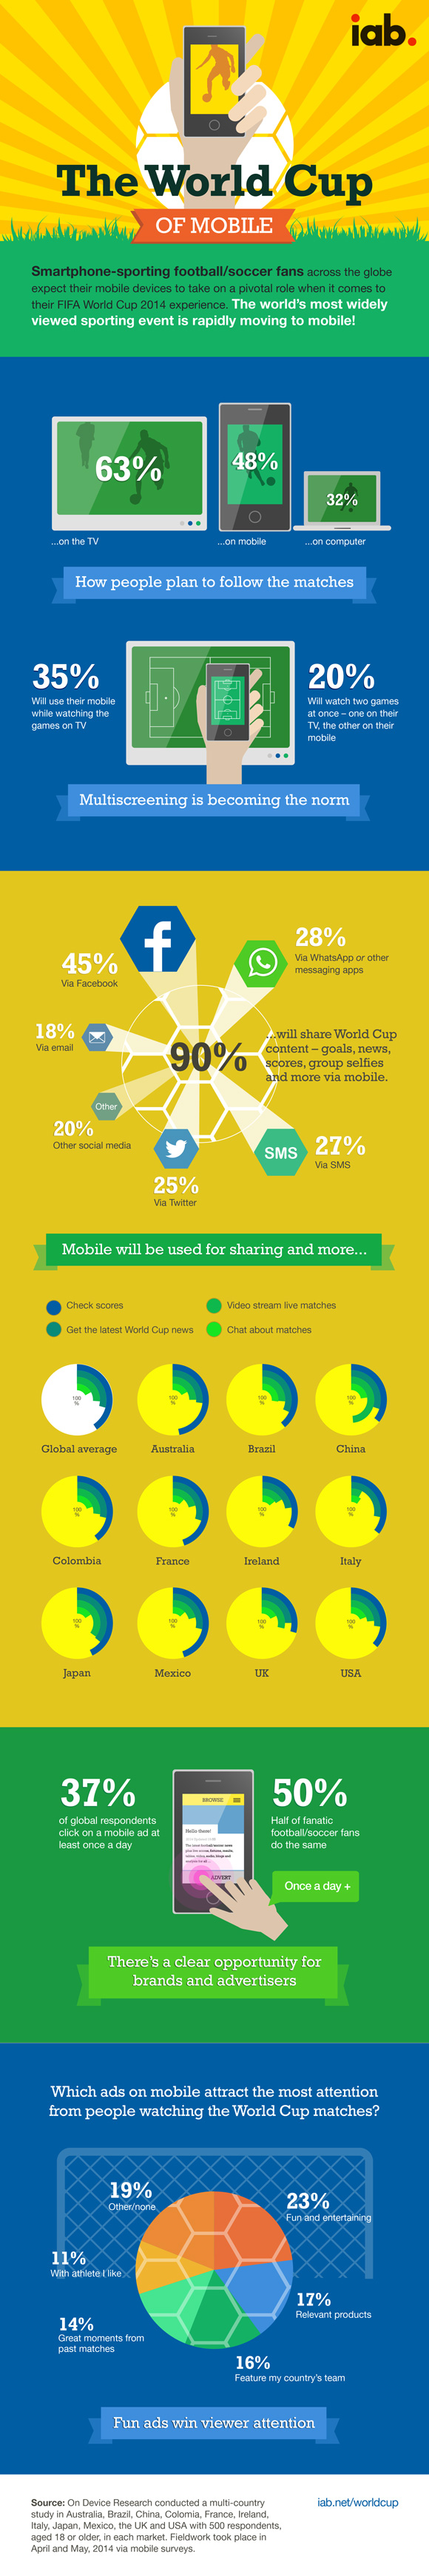 The World Cup of Mobile infographic